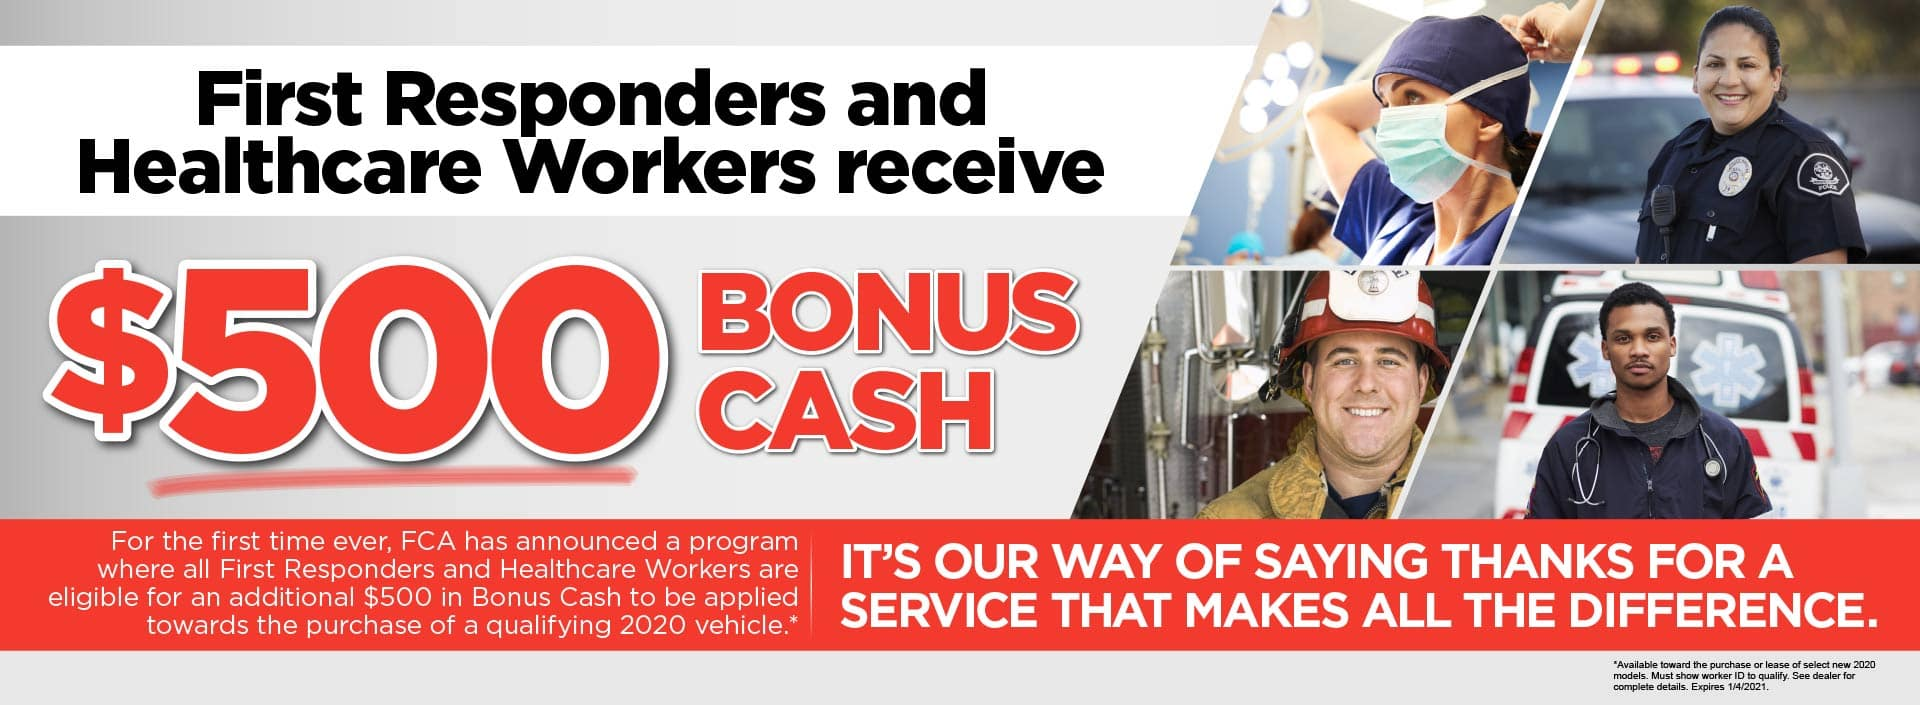 First Responders and Healthcare Workers receive $500 Bonus Cash*